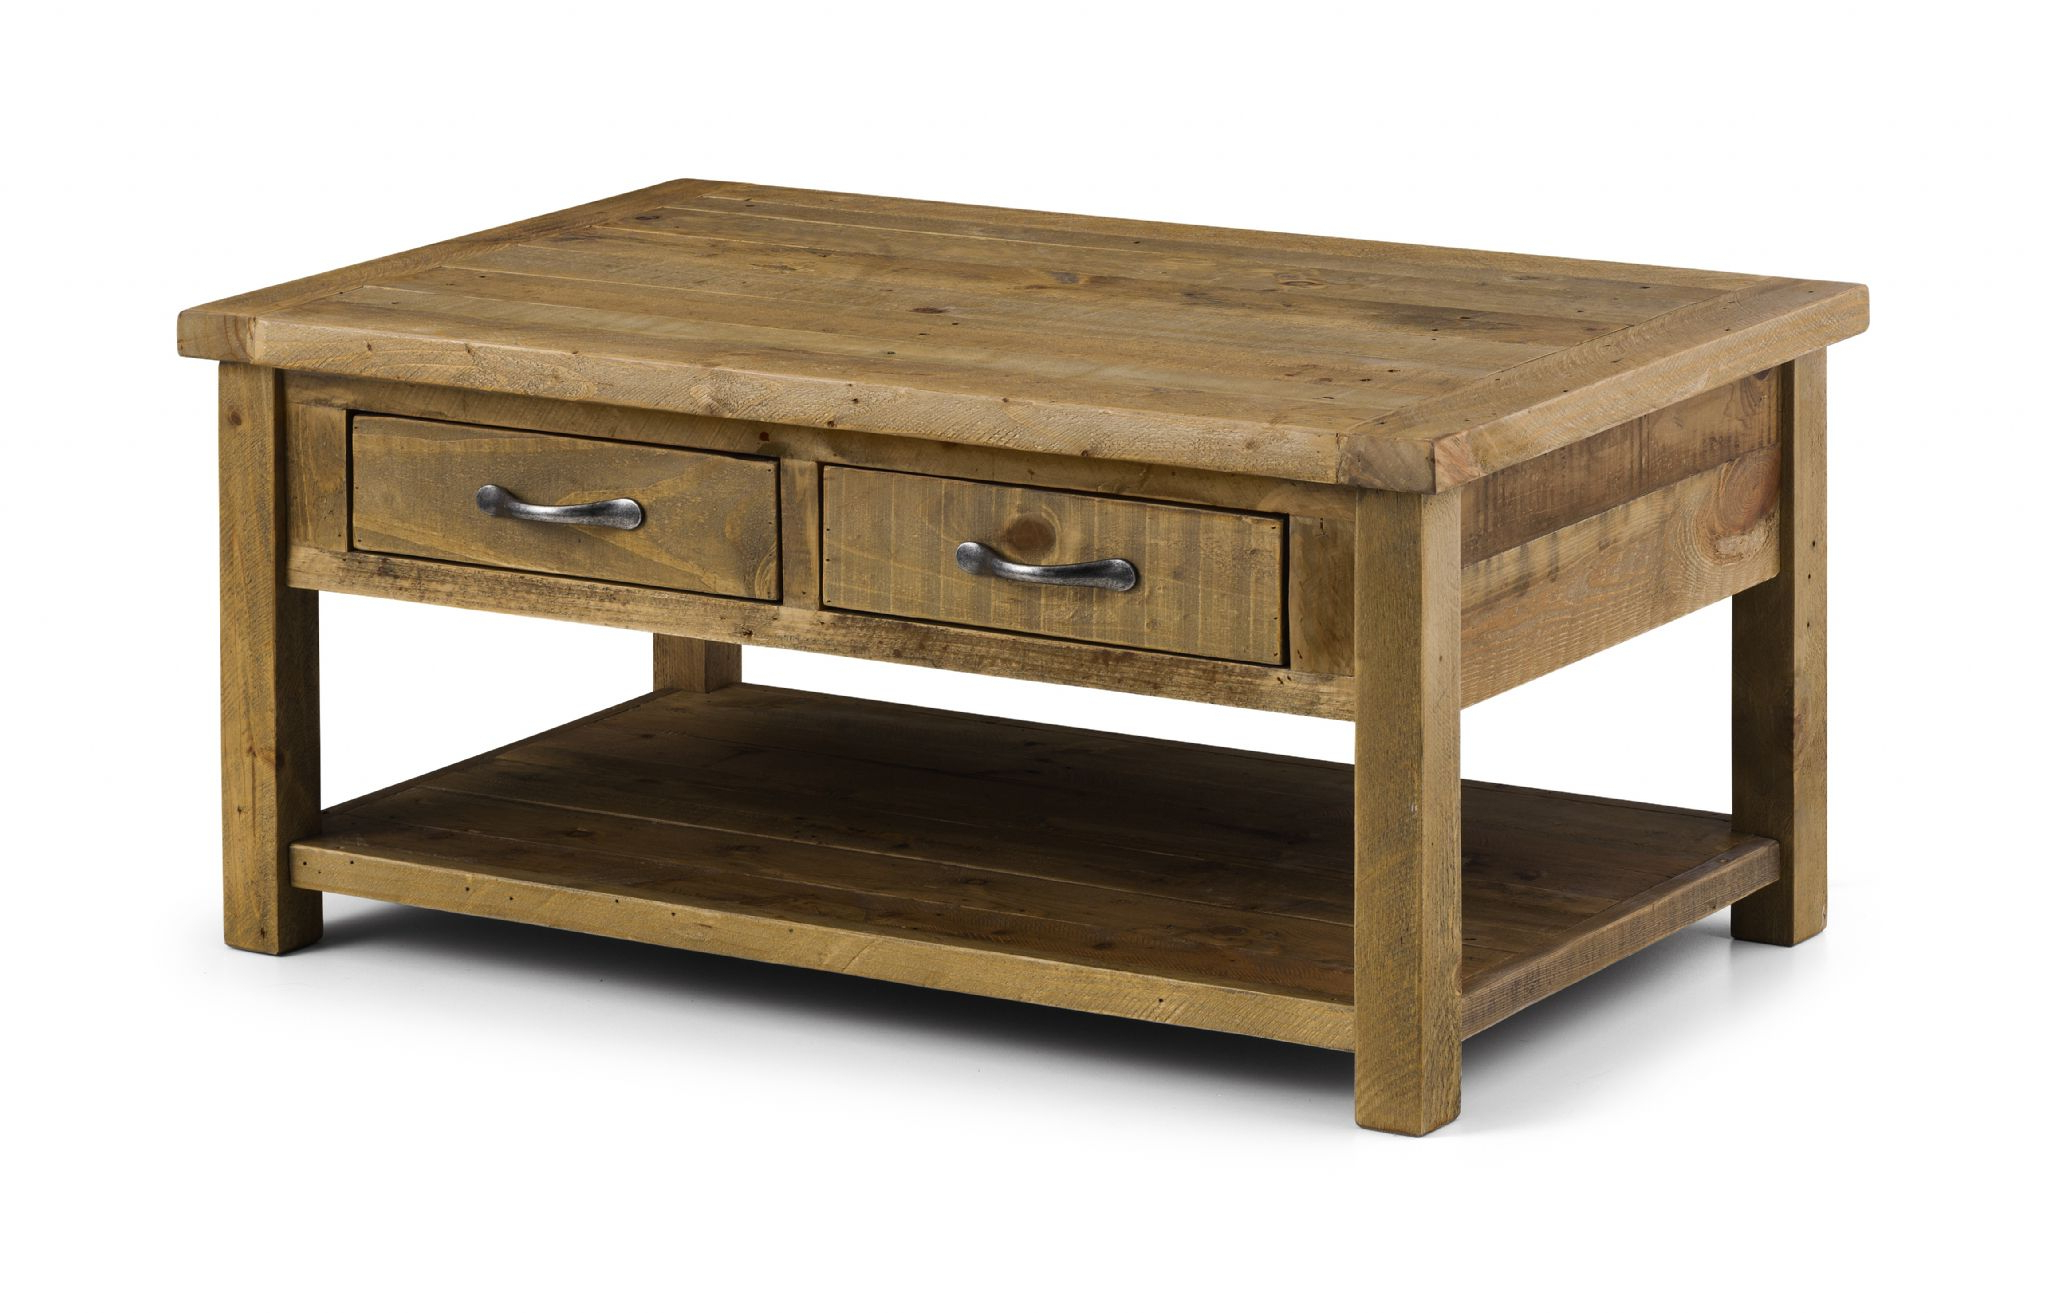 Cordoba Solid Reclaimed Pine Coffee Table With 2 Drawers Jb36 Throughout Famous Reclaimed Pine Coffee Tables (Gallery 11 of 20)